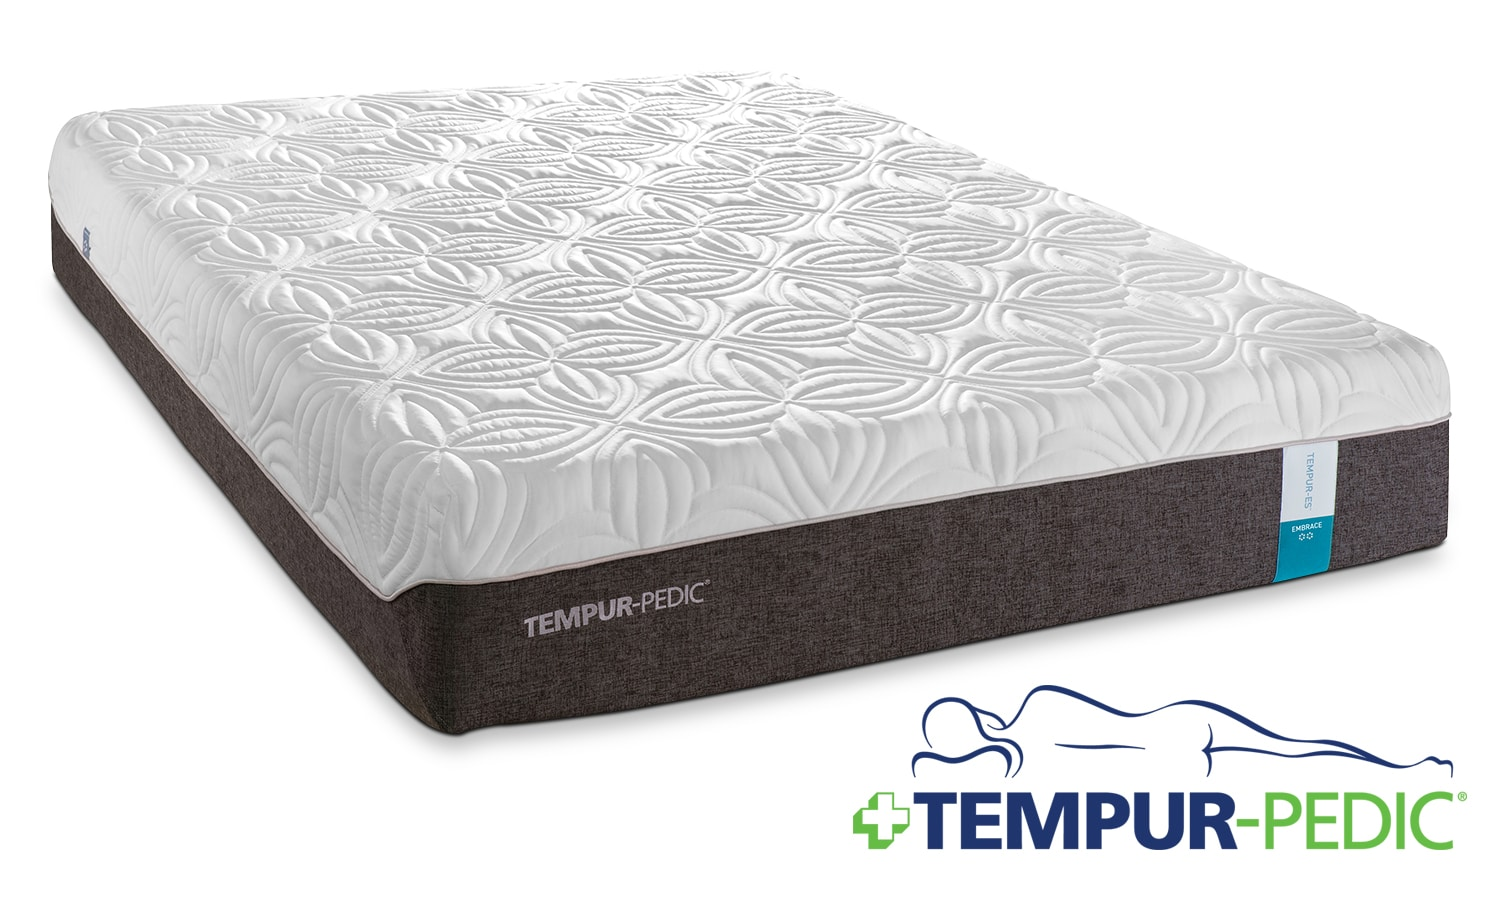 Tempur-Pedic Embrace Queen Mattress